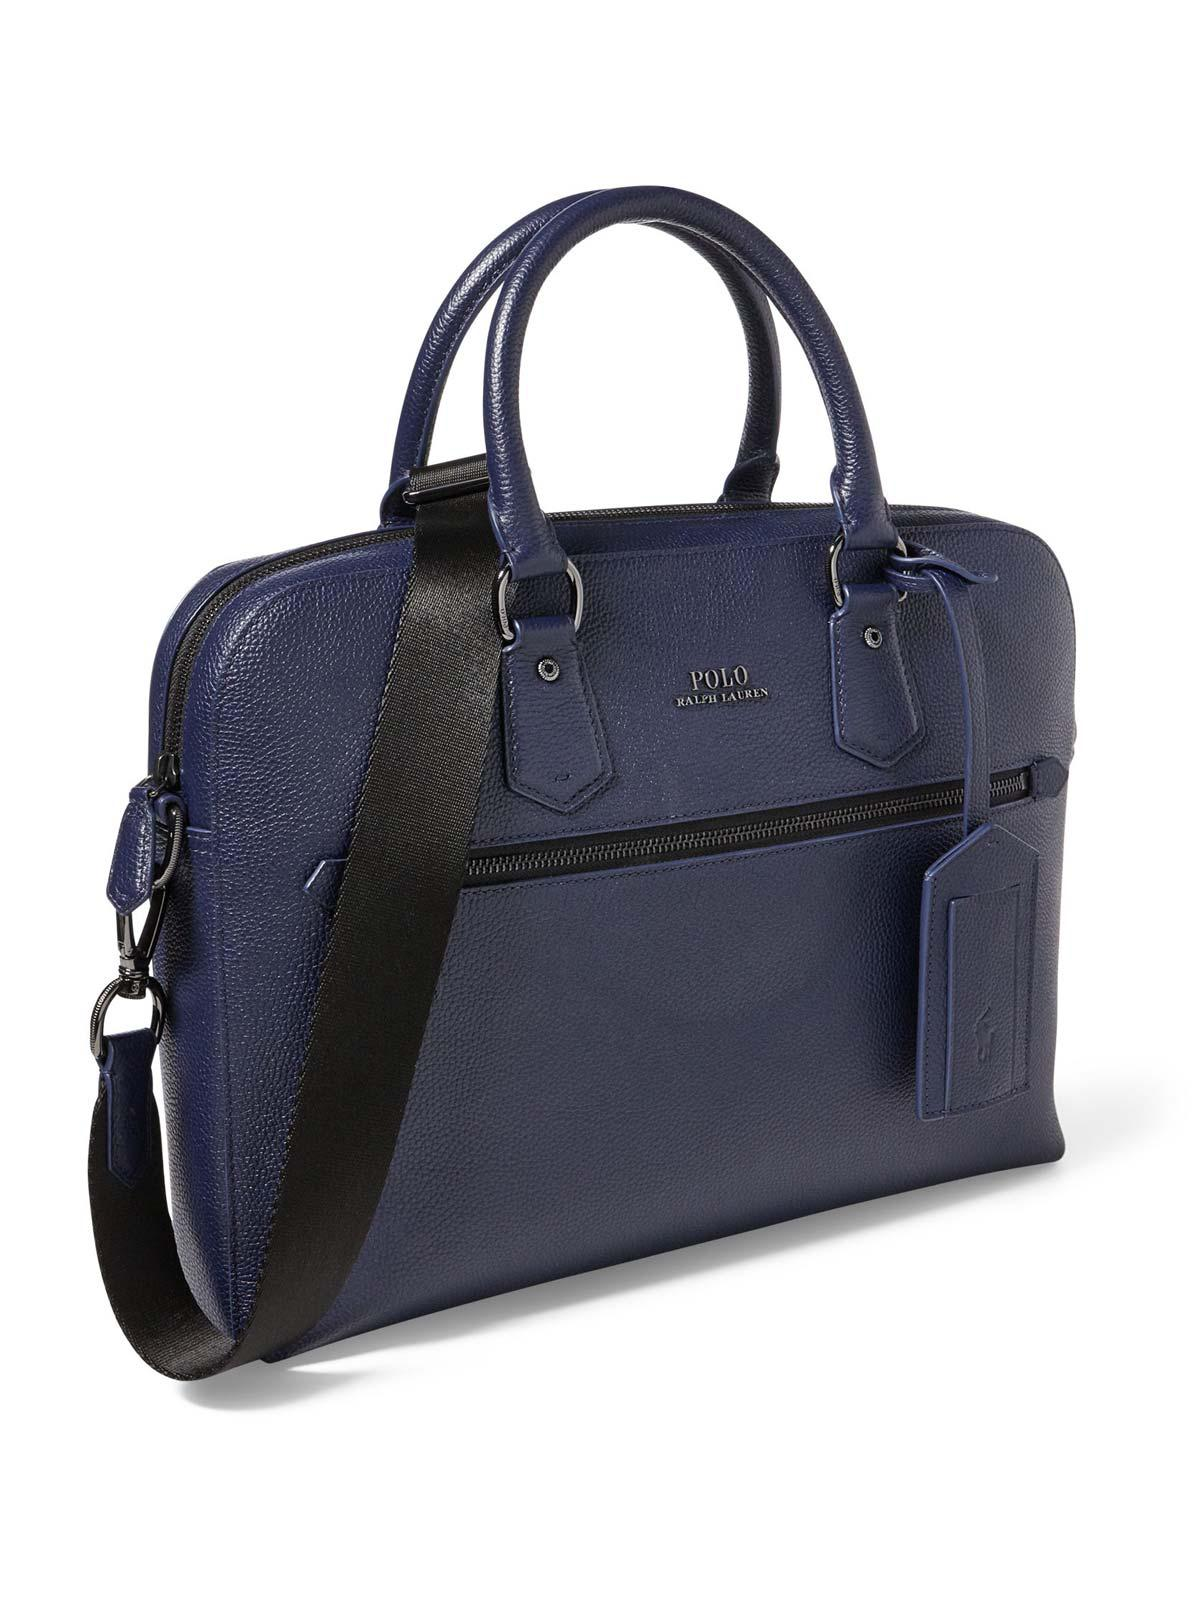 98511684fd Lyst - Polo Ralph Lauren A98 Bag in Blue for Men - Save 3%